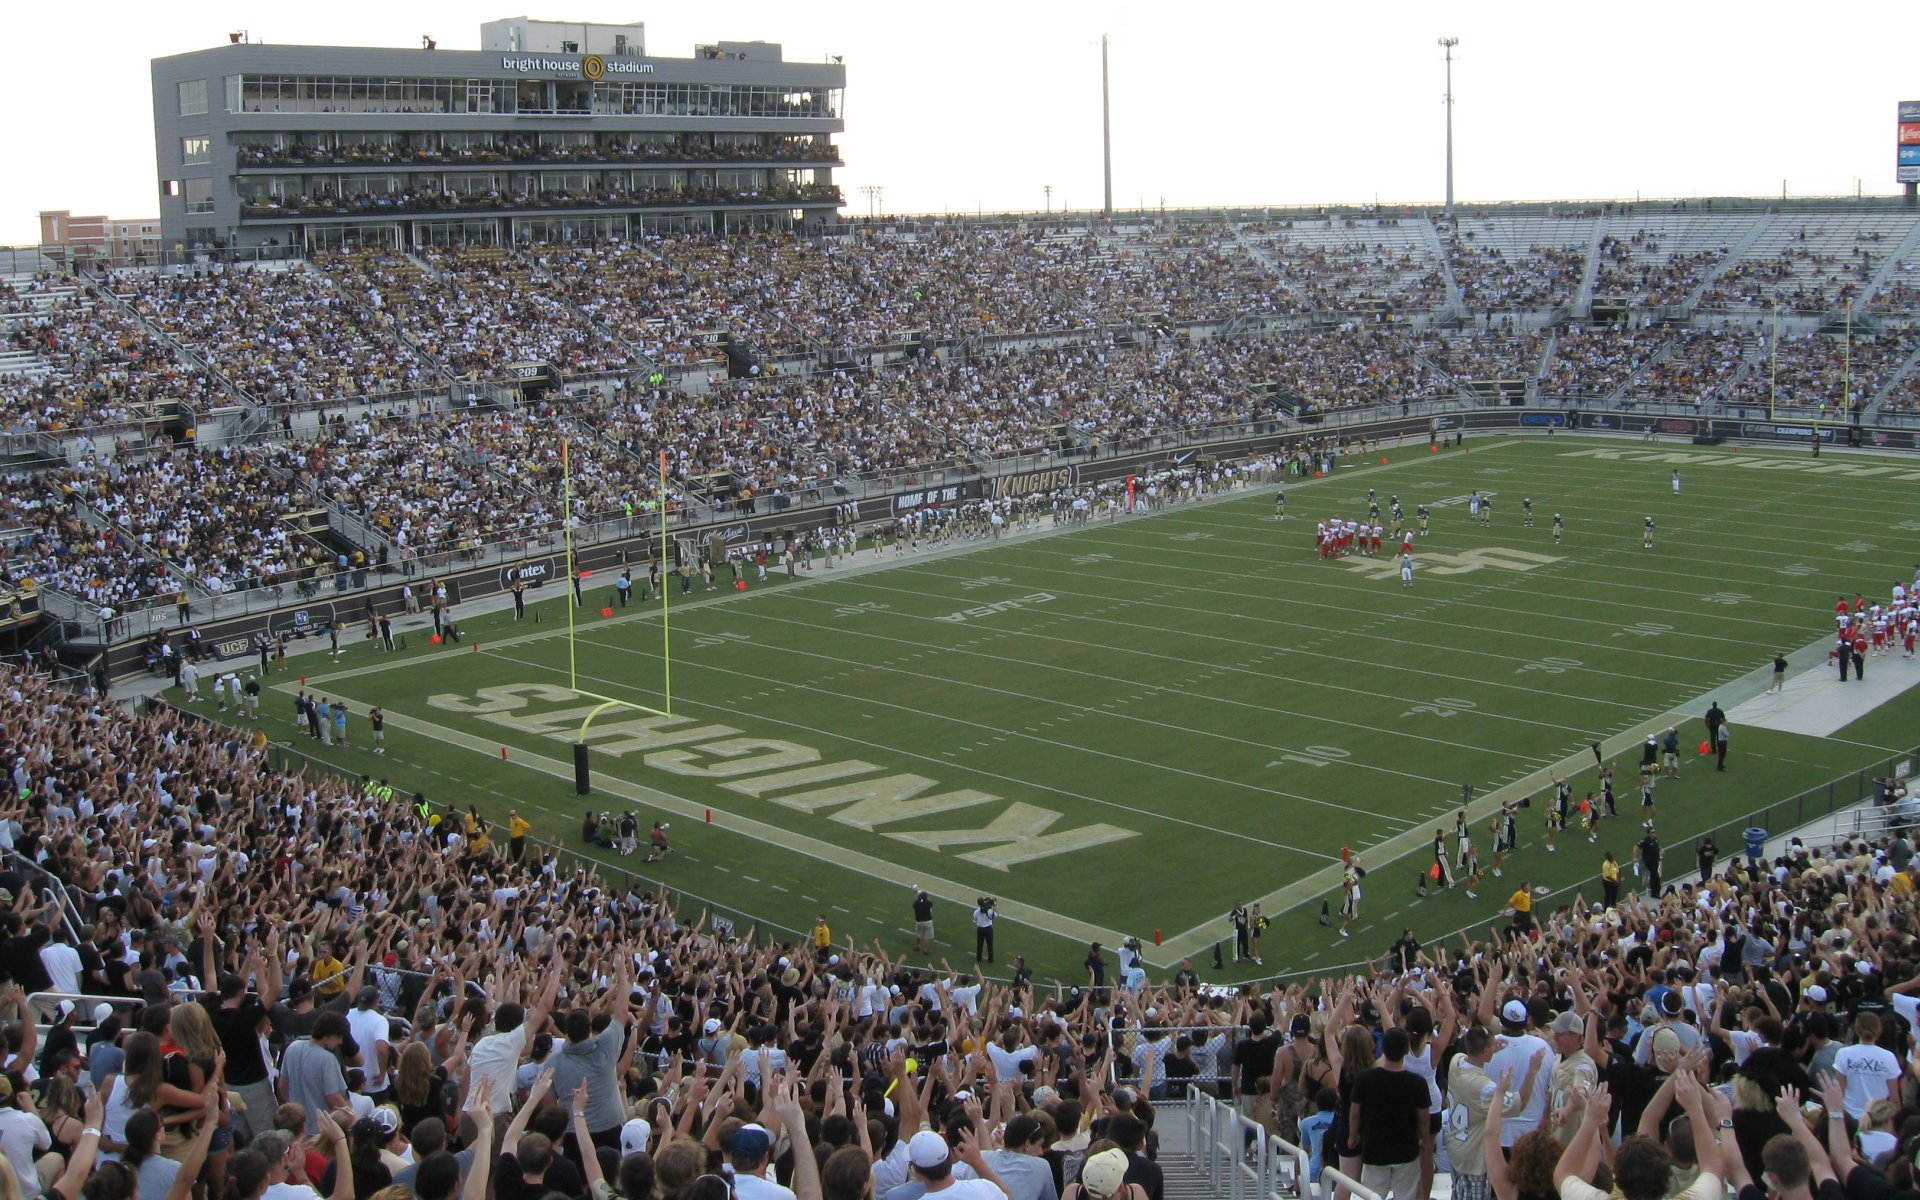 american athletic conference college football stadiums wallpapers. Black Bedroom Furniture Sets. Home Design Ideas